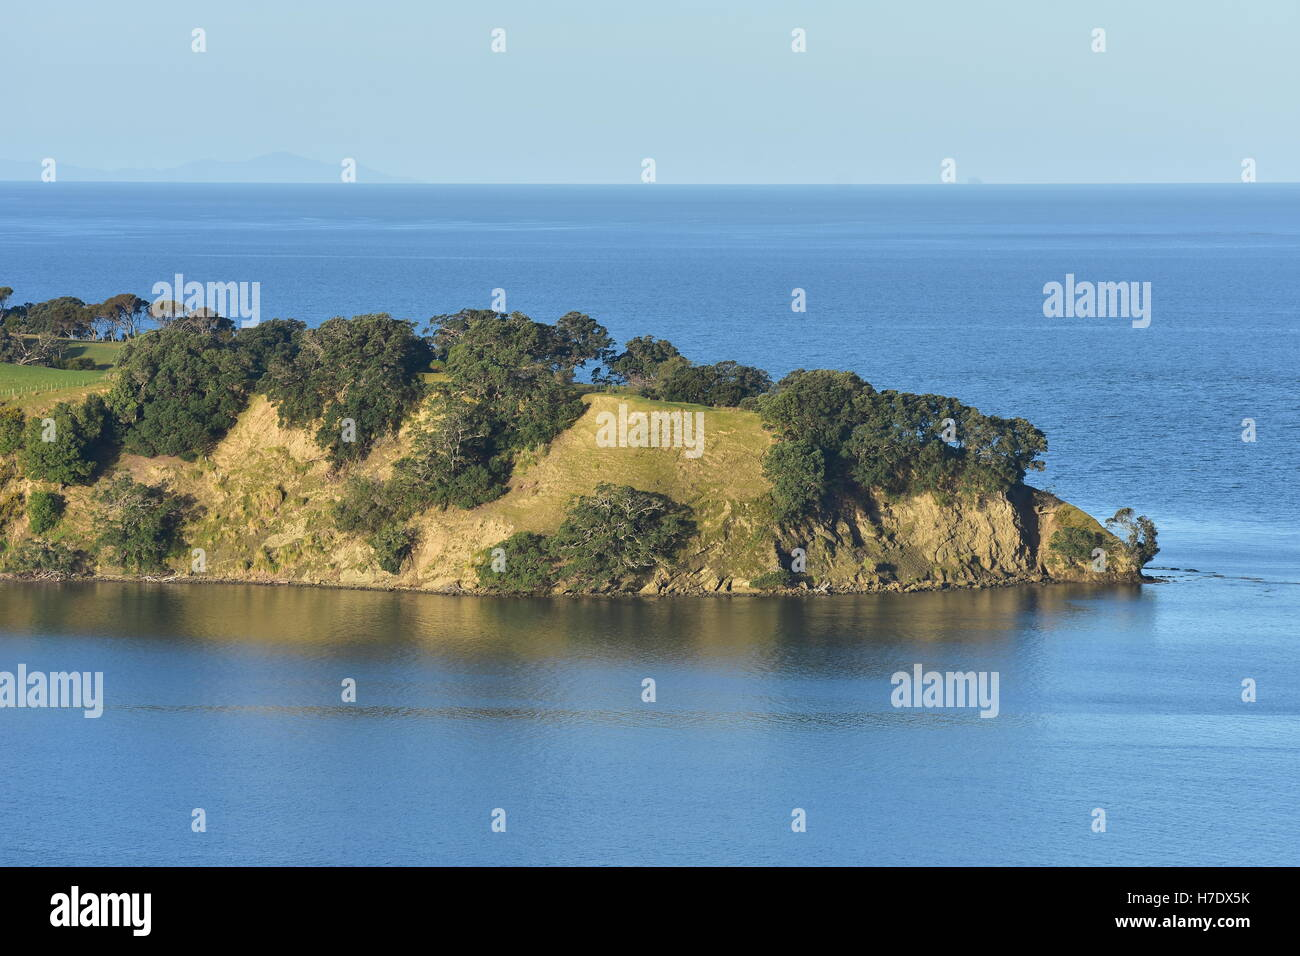 View of calm waters of Hauraki Gulf outside Mahurangi Harbour. - Stock Image